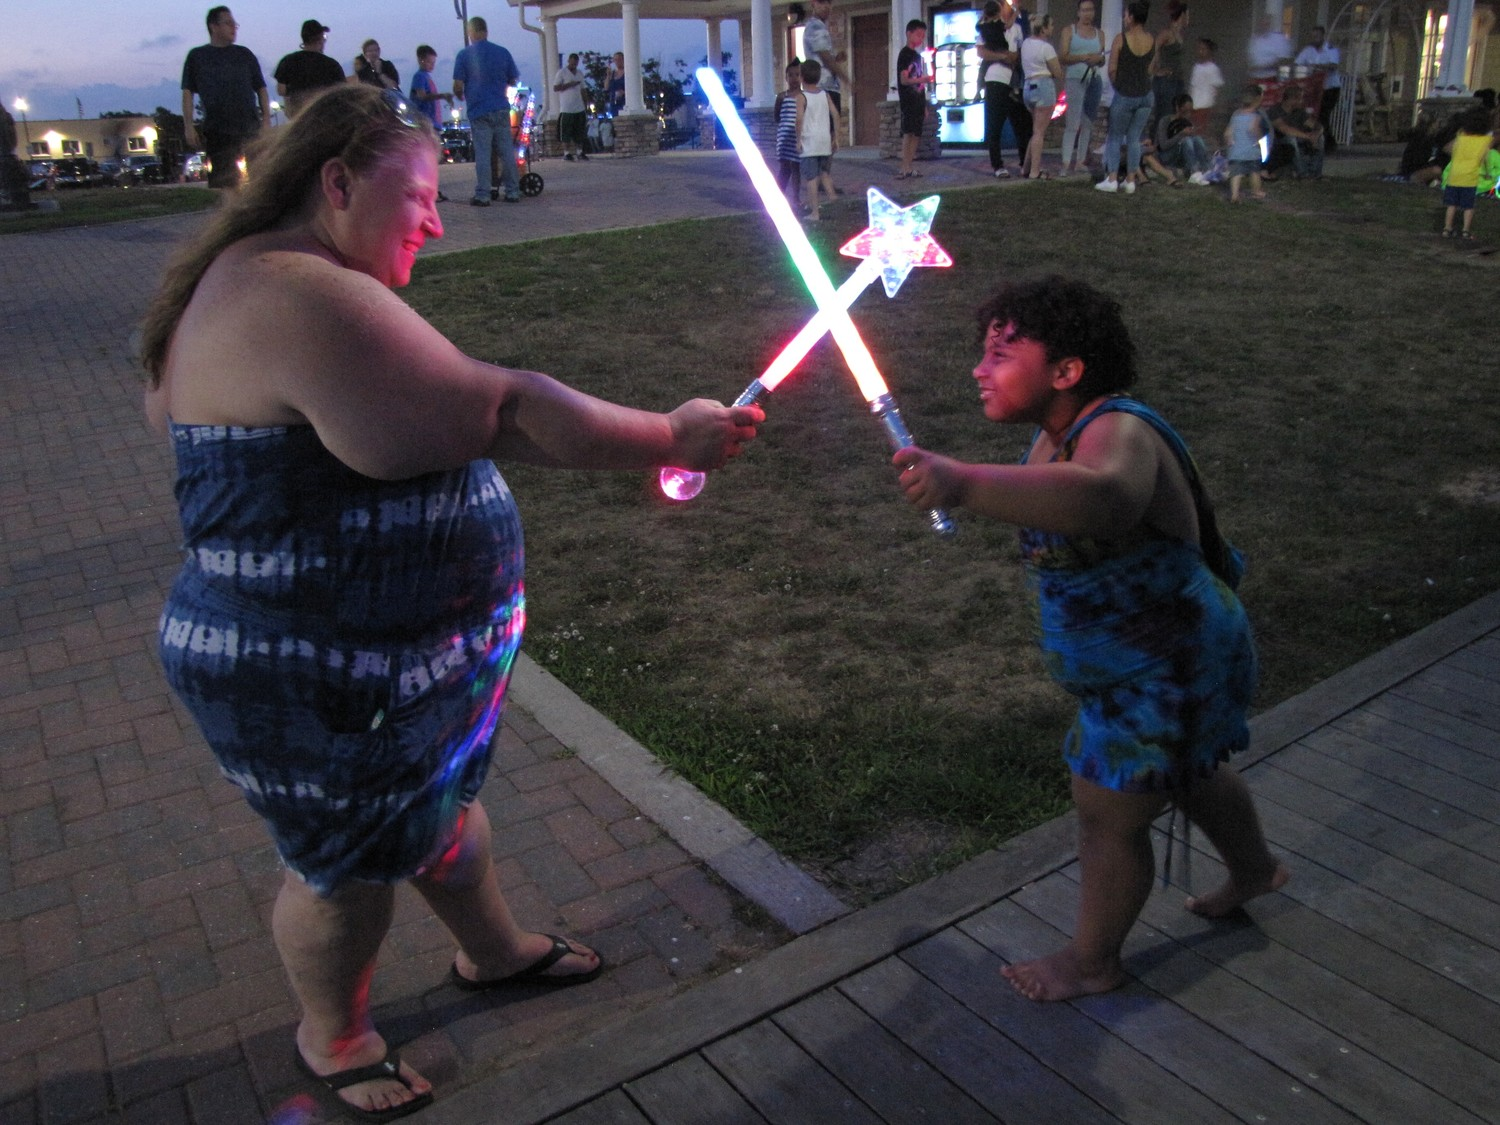 Before the fireworks started, mother and daughter Kristin and Ariella Wagner, of Freeport, played with their glow-in-the-dark swords.